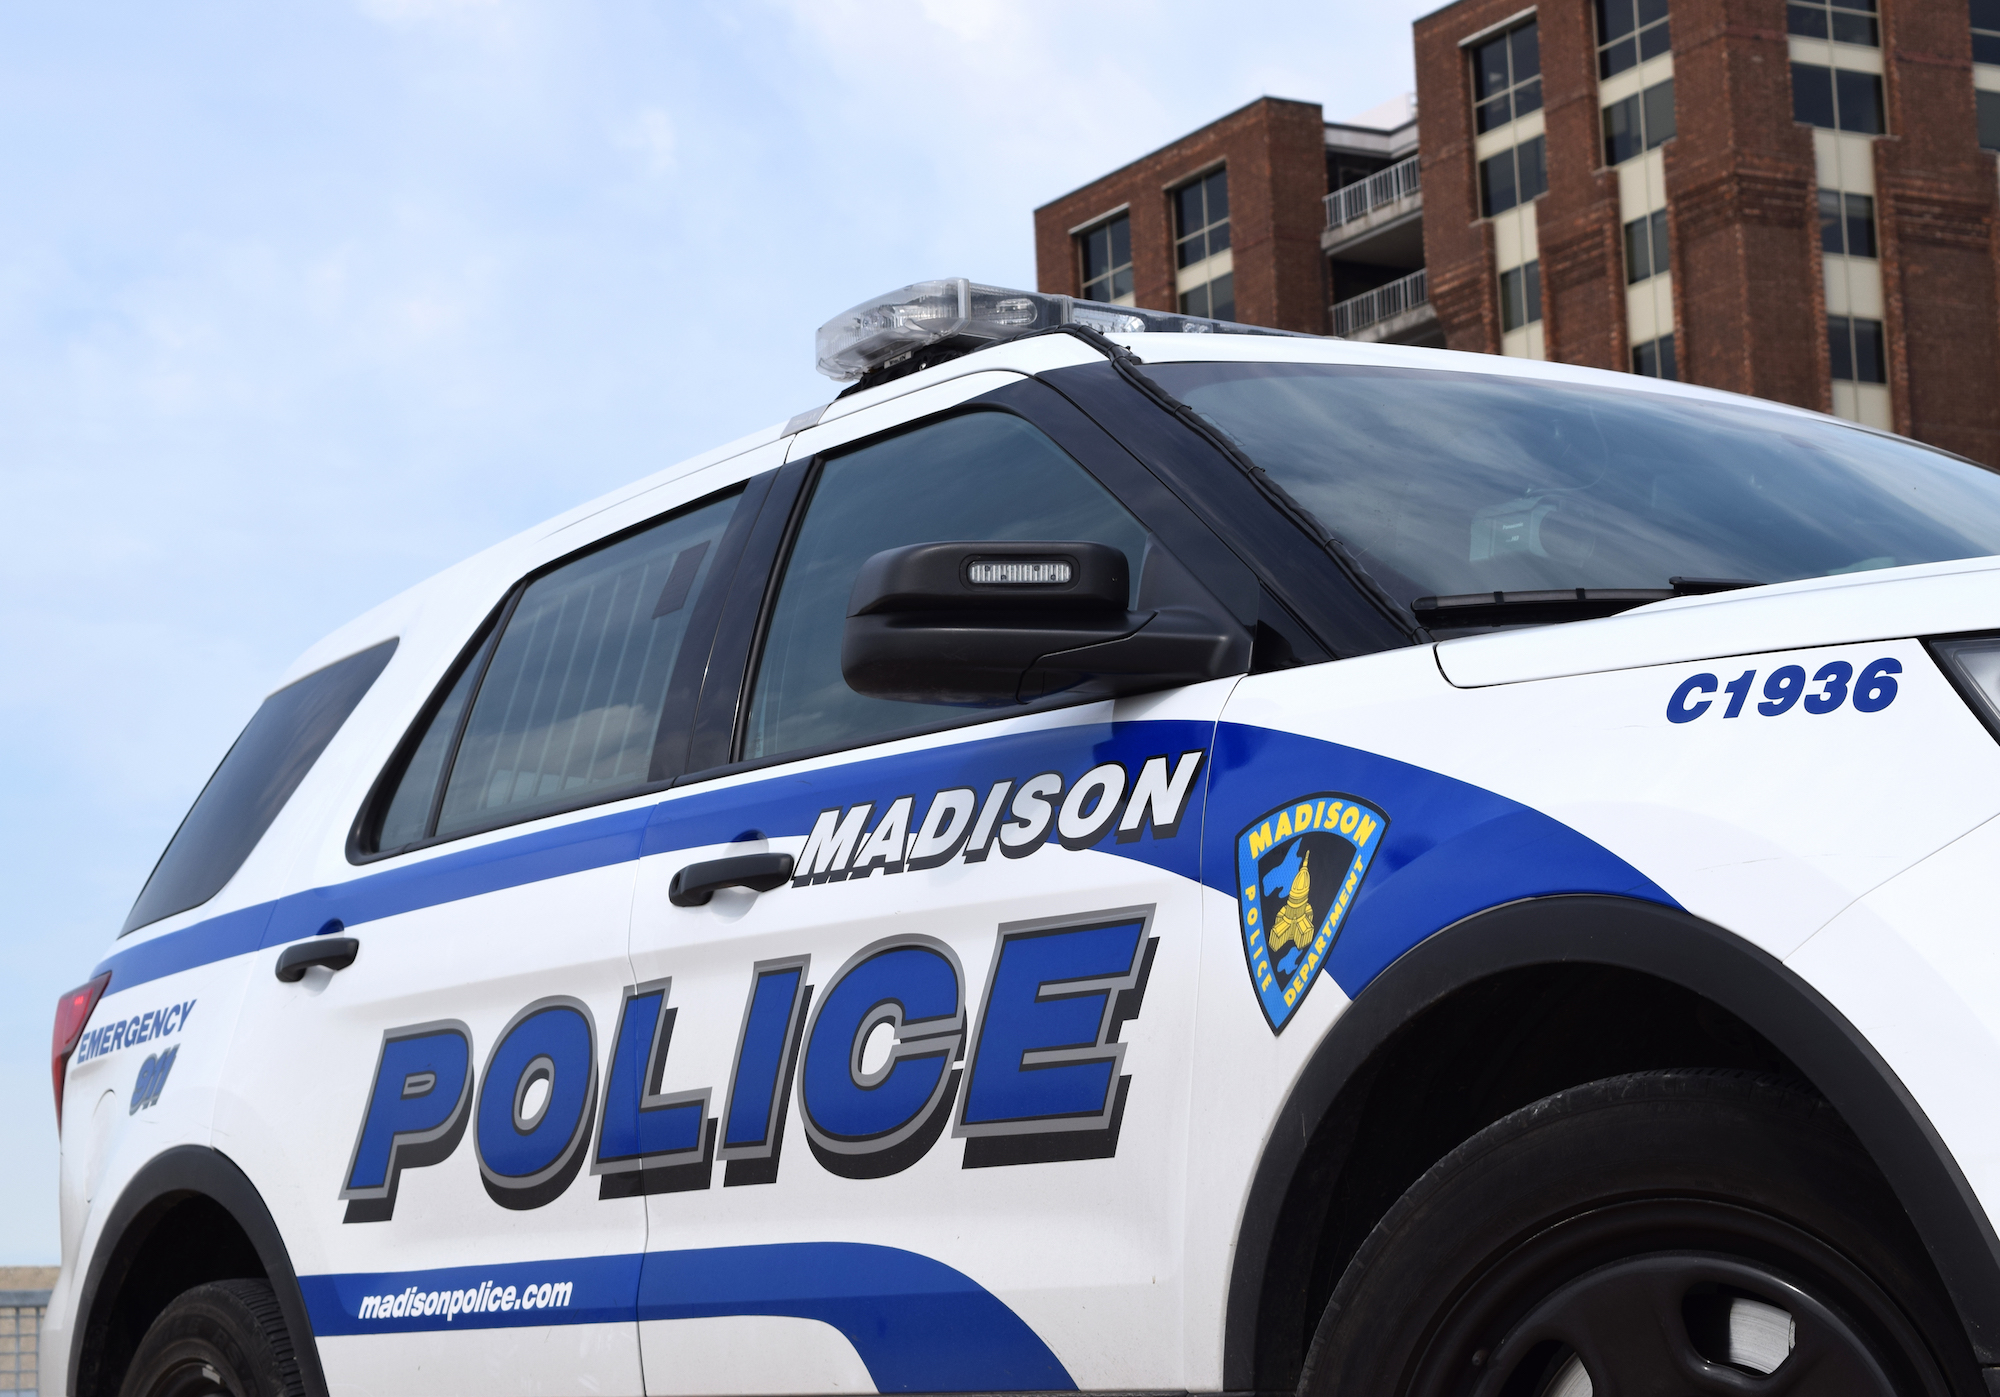 Madison Police Department Needs More Outside Oversight